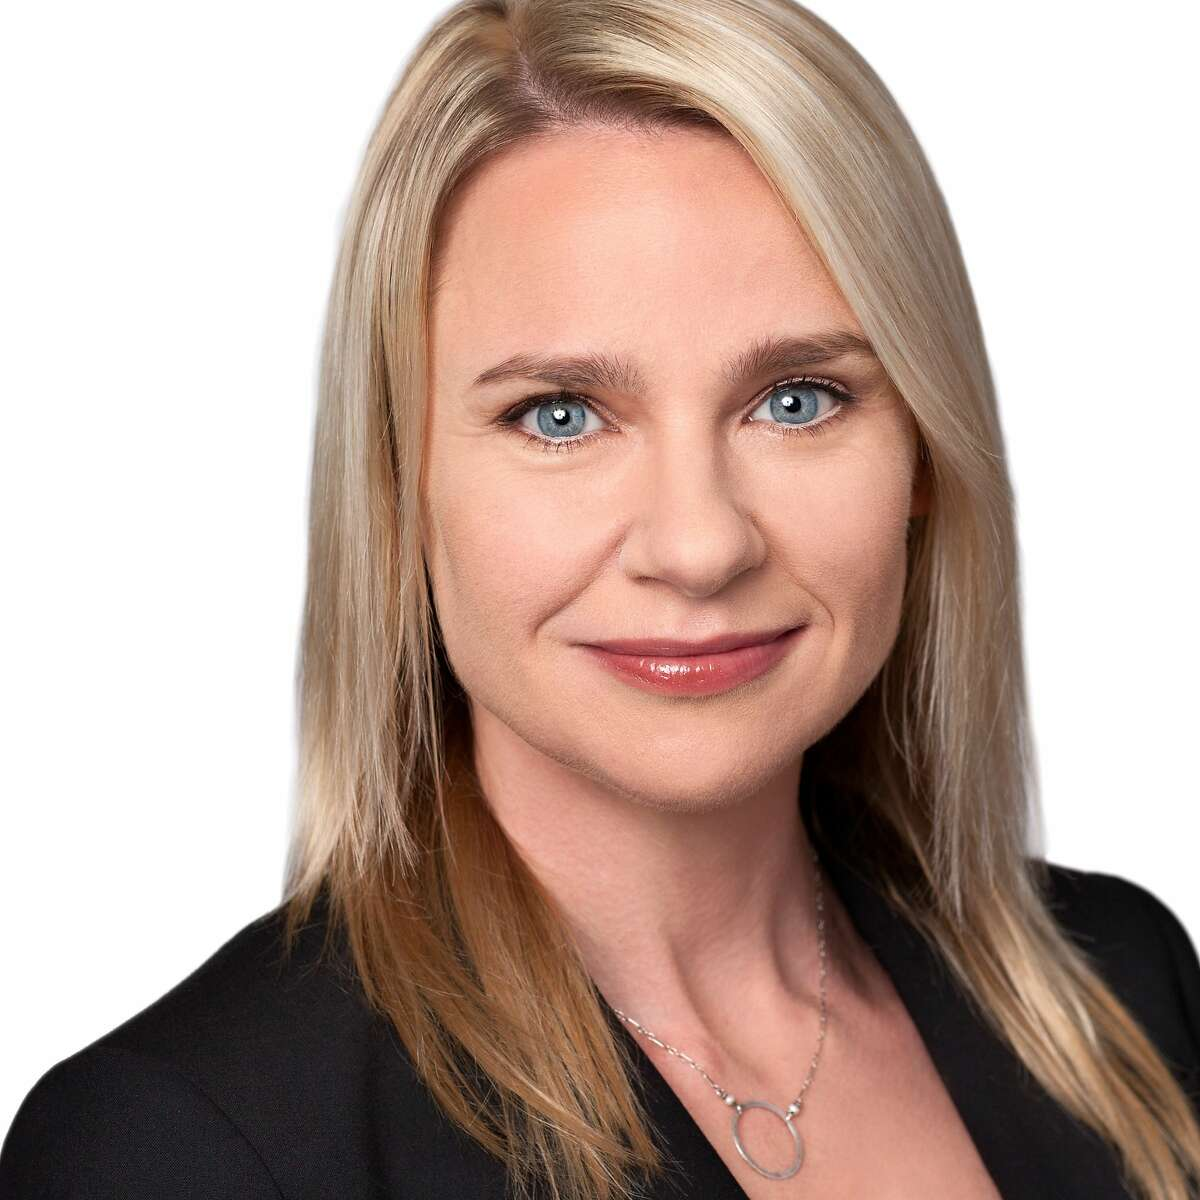 Coldwell Banker Residential Brokerage added Kate Tomassi as a sales associate in its San Francisco Lakeside office.